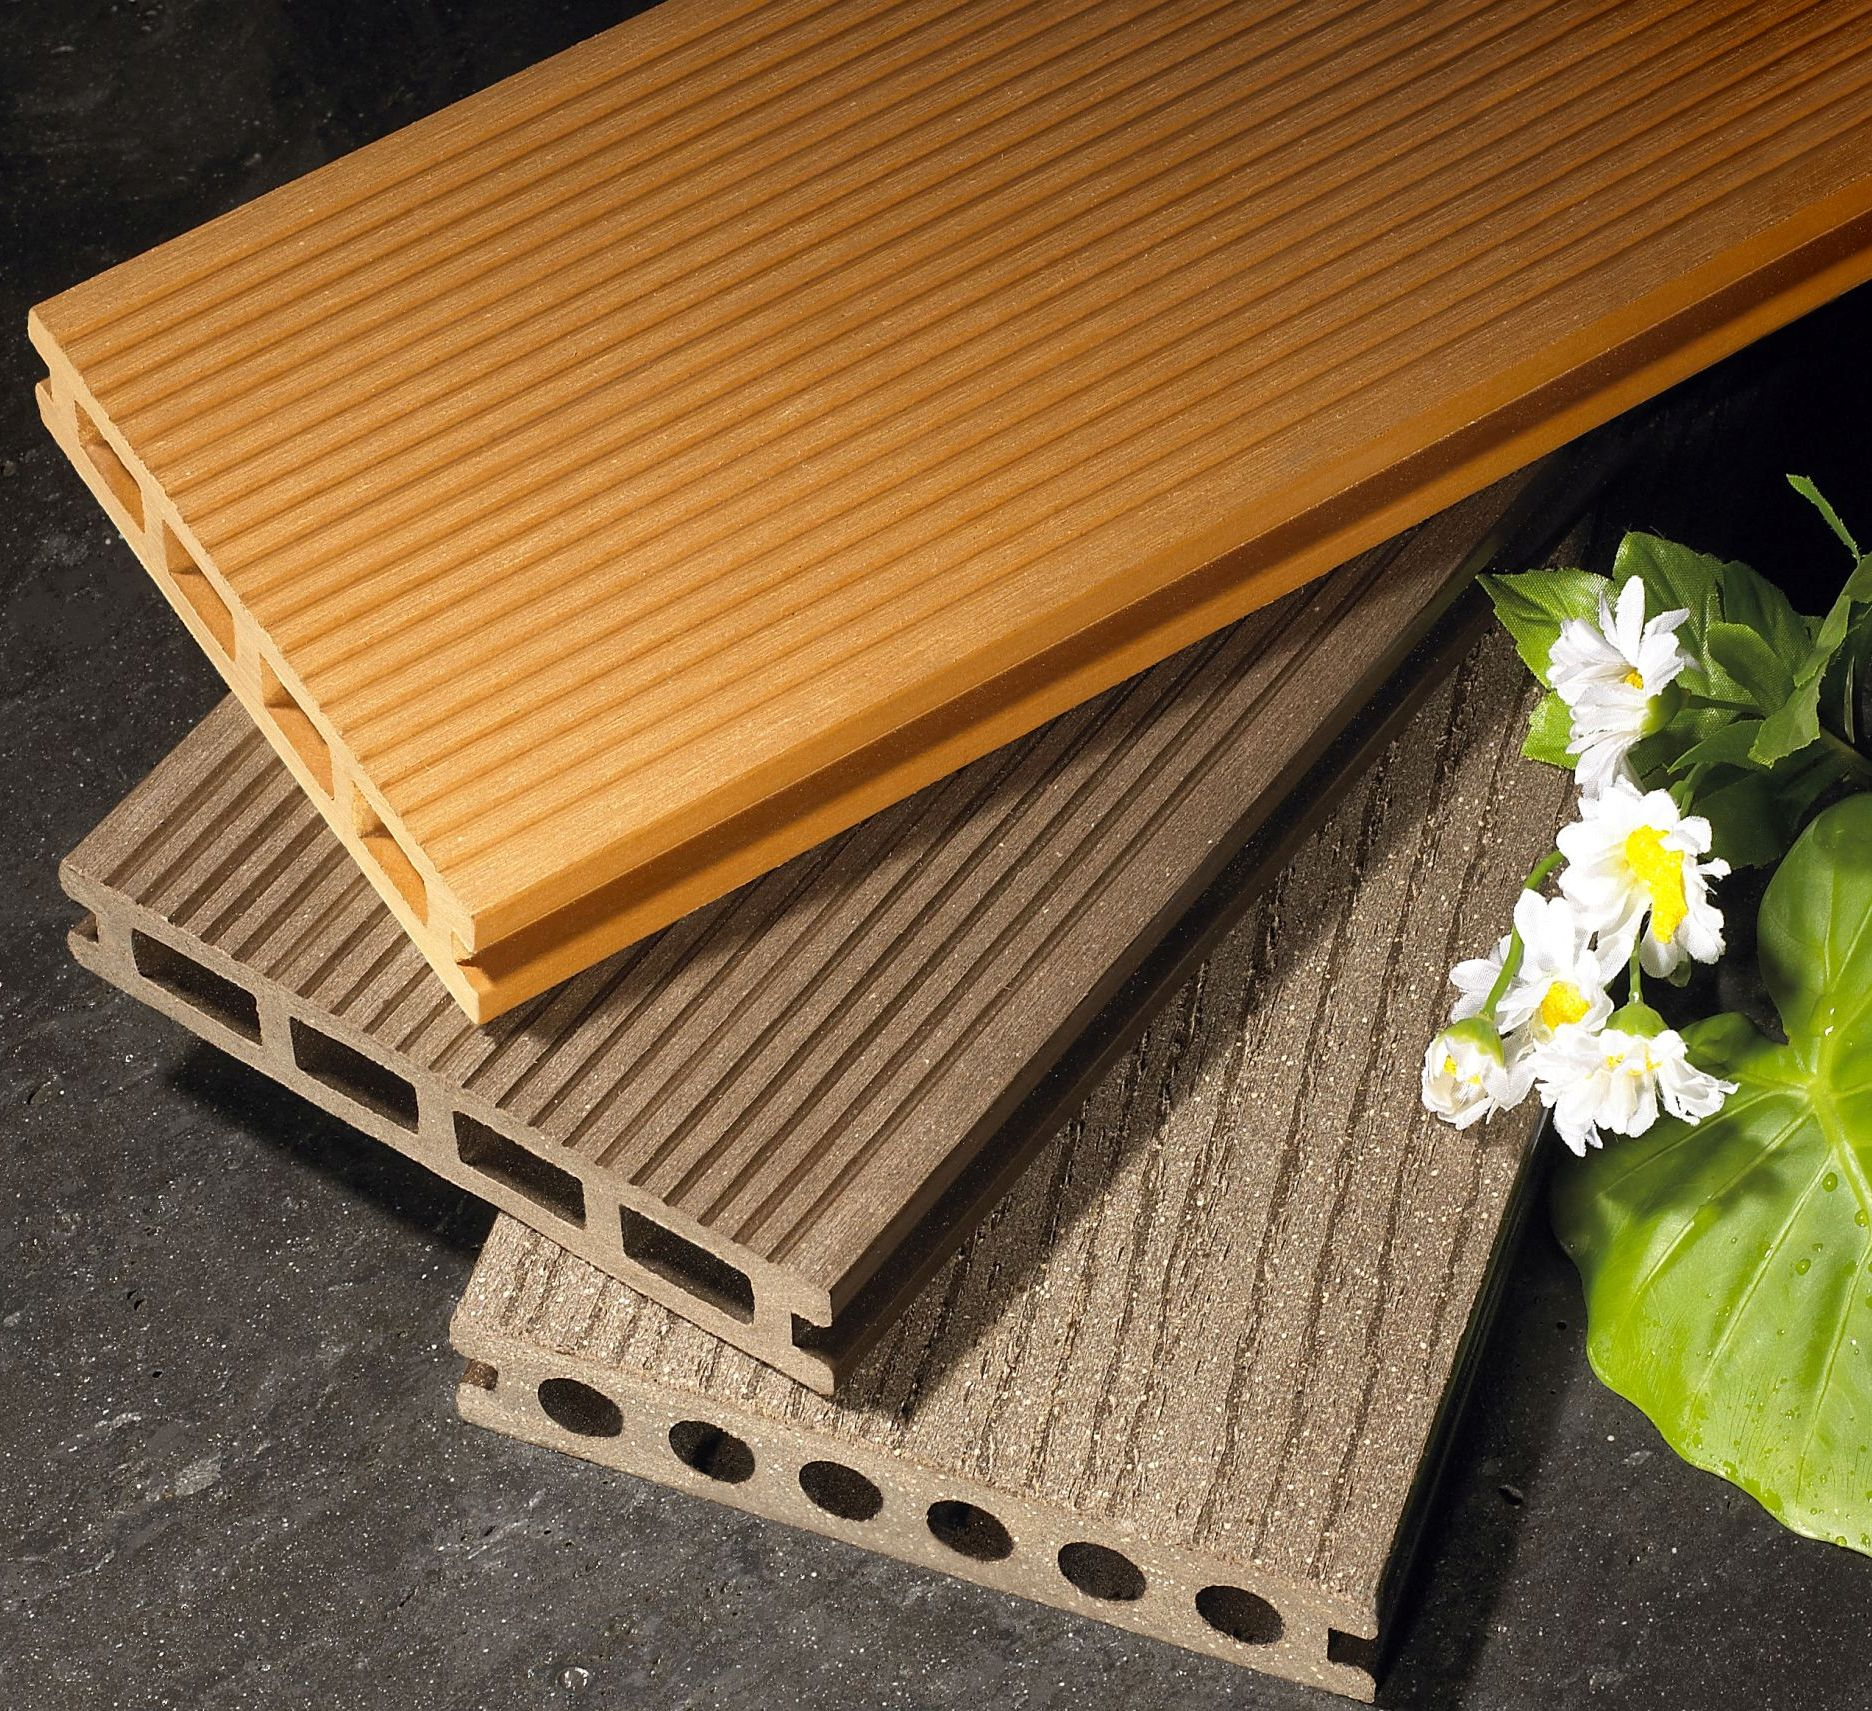 the development direction of wood plastic composites